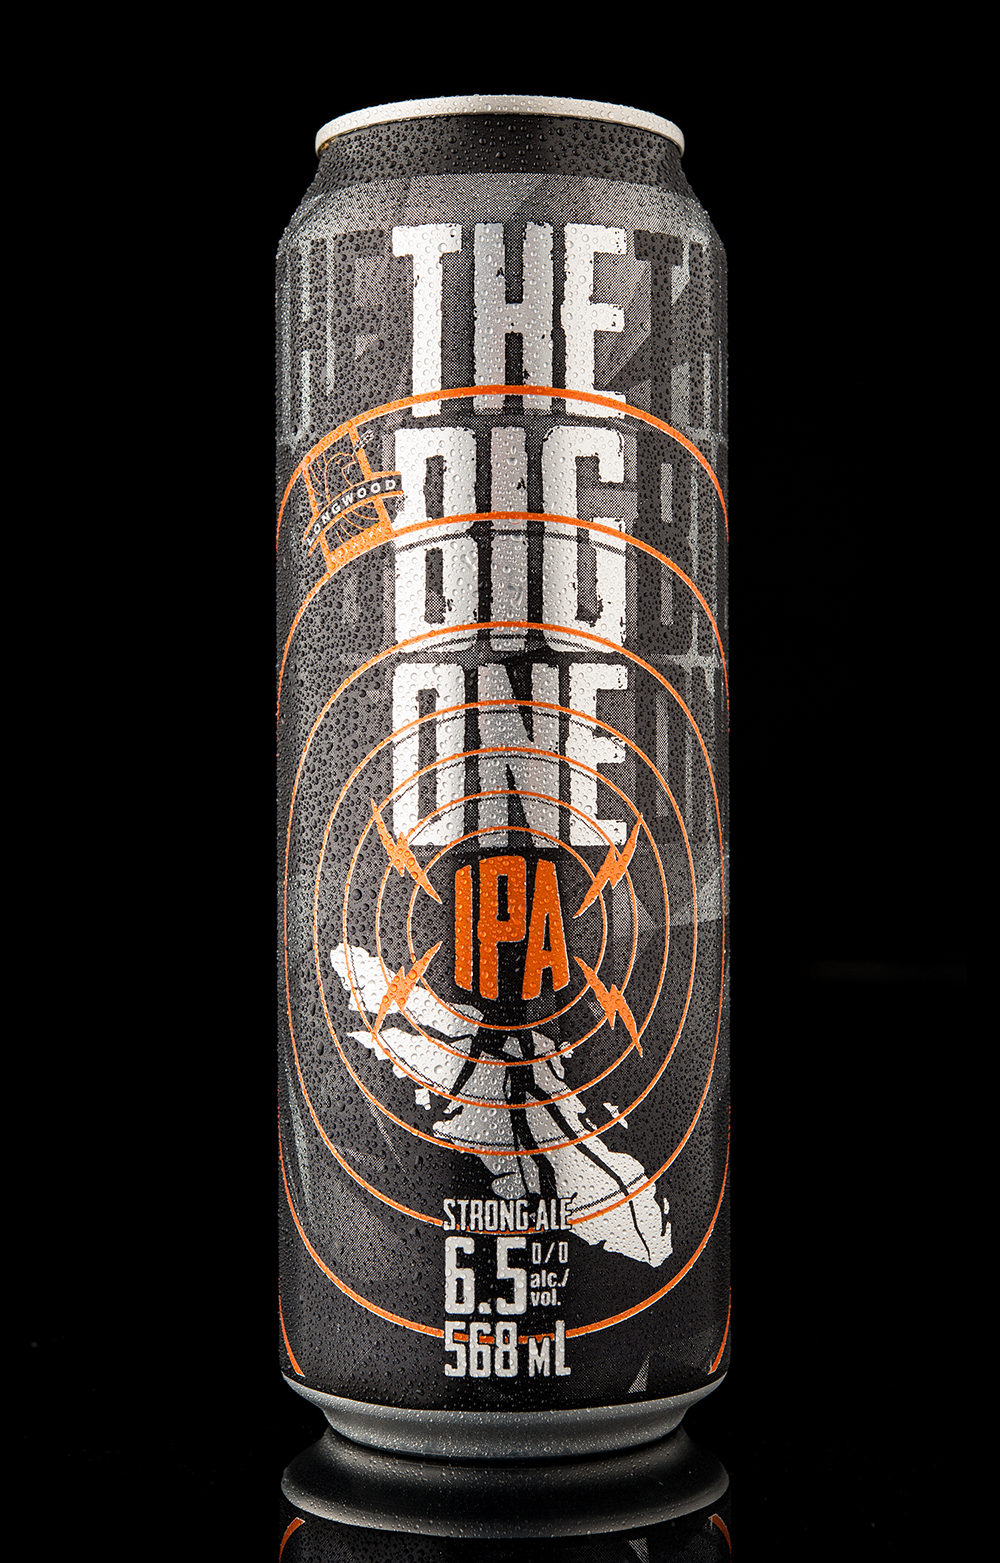 The Big Oner IPA